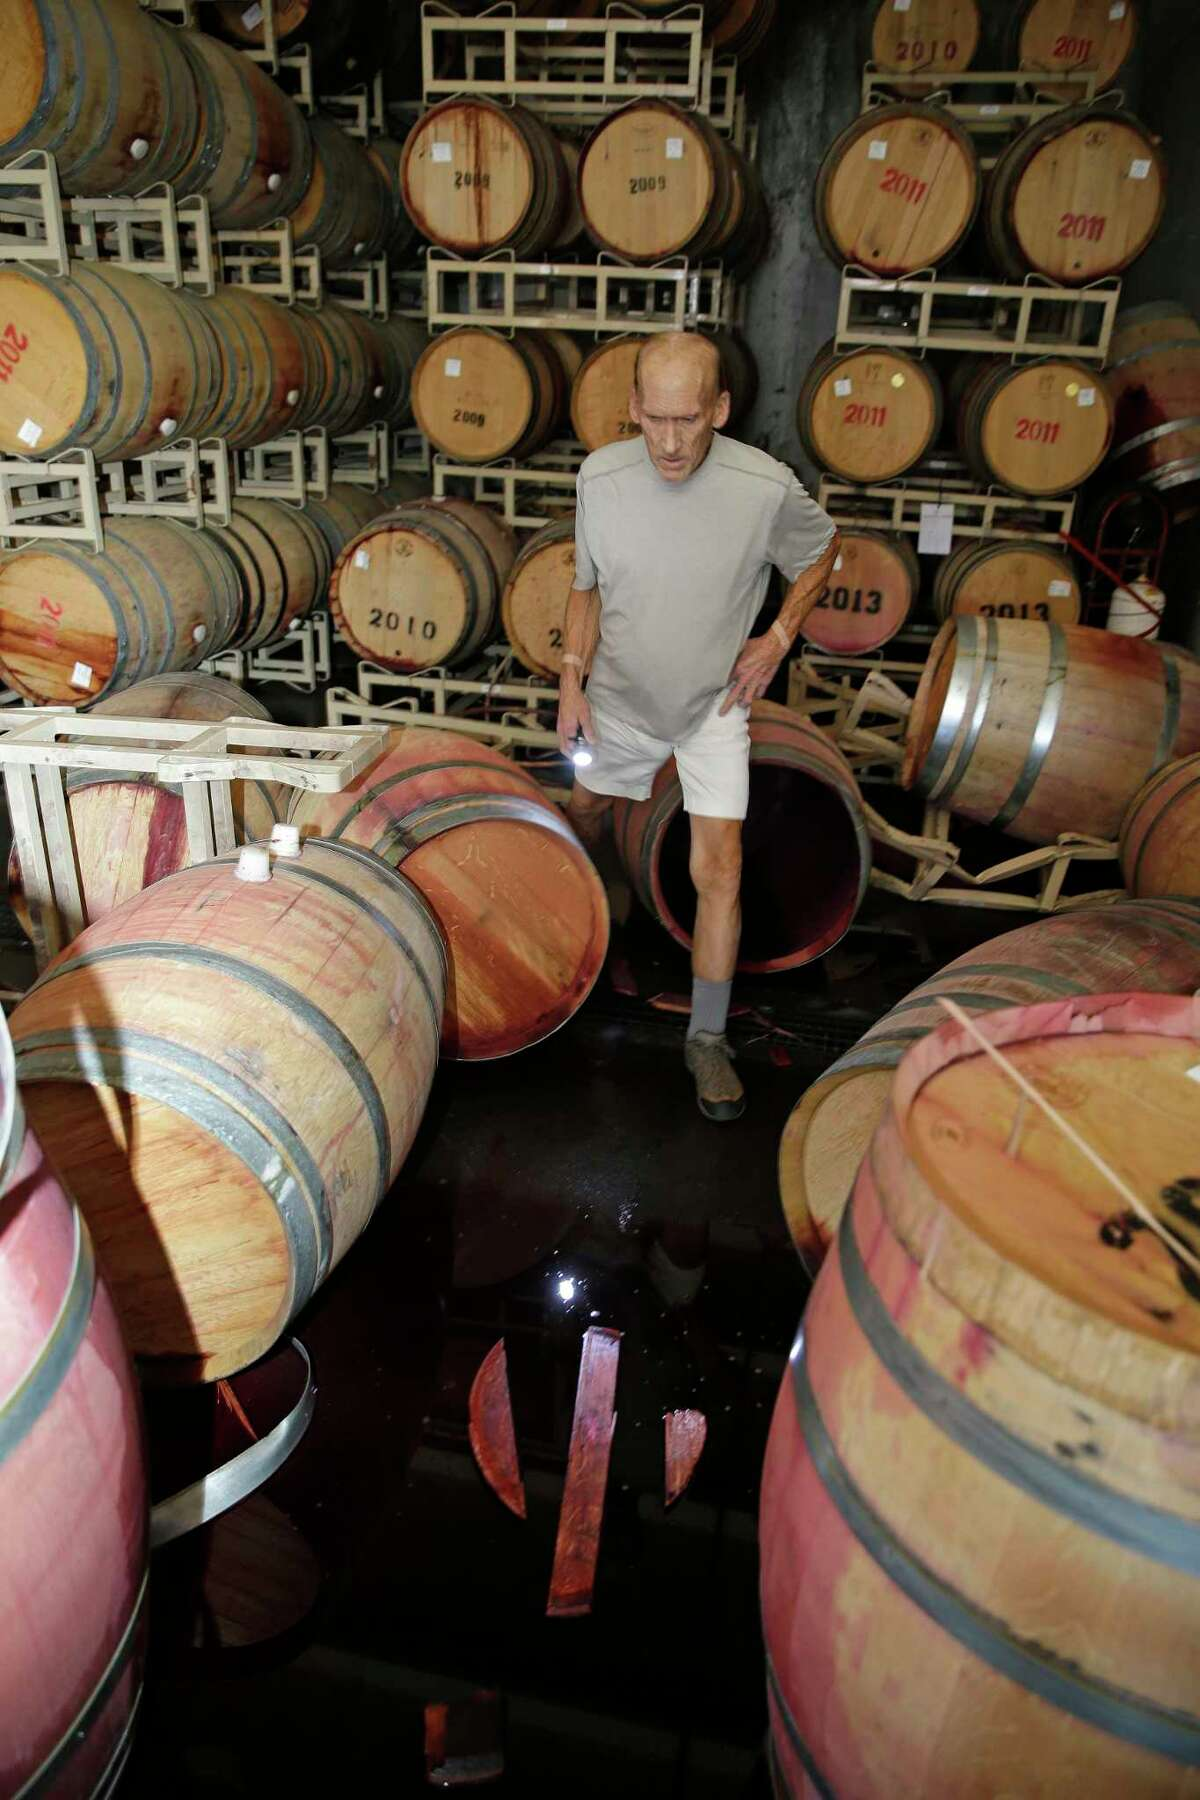 Winemaker Tom Montgomery walks in wine and looks over damage following an earthquake at the B.R. Cohn Winery barrel storage facility Sunday, Aug. 24, 2014, in Napa, Calif. Winemakers in Californiaís storied Napa Valley woke up to thousands of broken bottles, barrels and gallons of ruined wine as a result of Sundayís earthquake. (AP Photo/Eric Risberg)